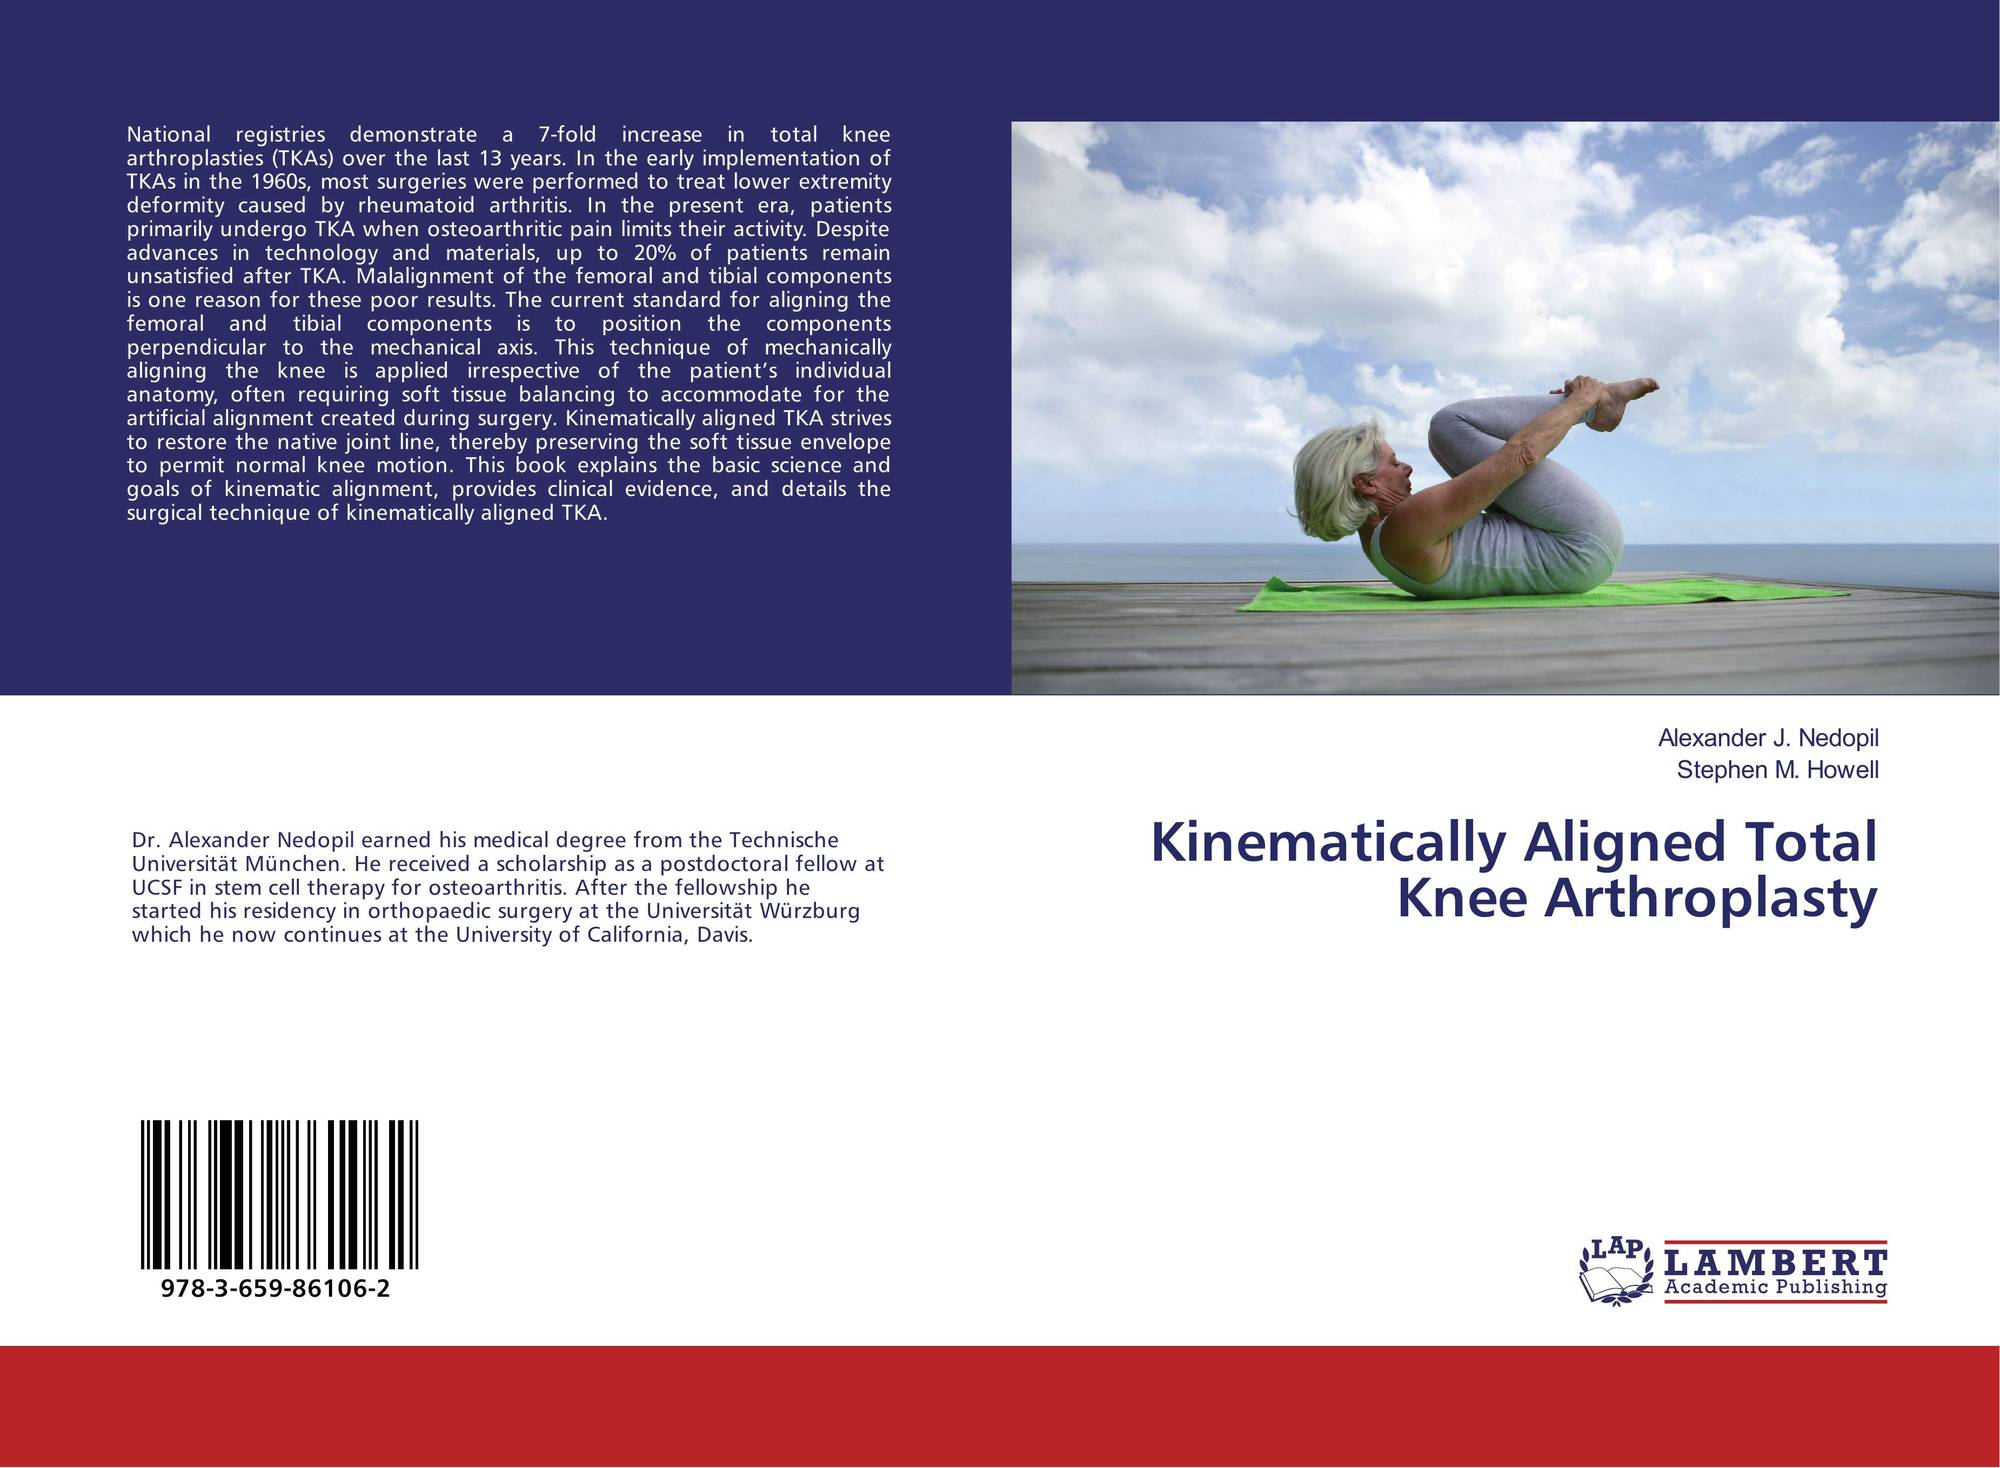 Kinematically Aligned Total Knee Arthroplasty, 978-3-659